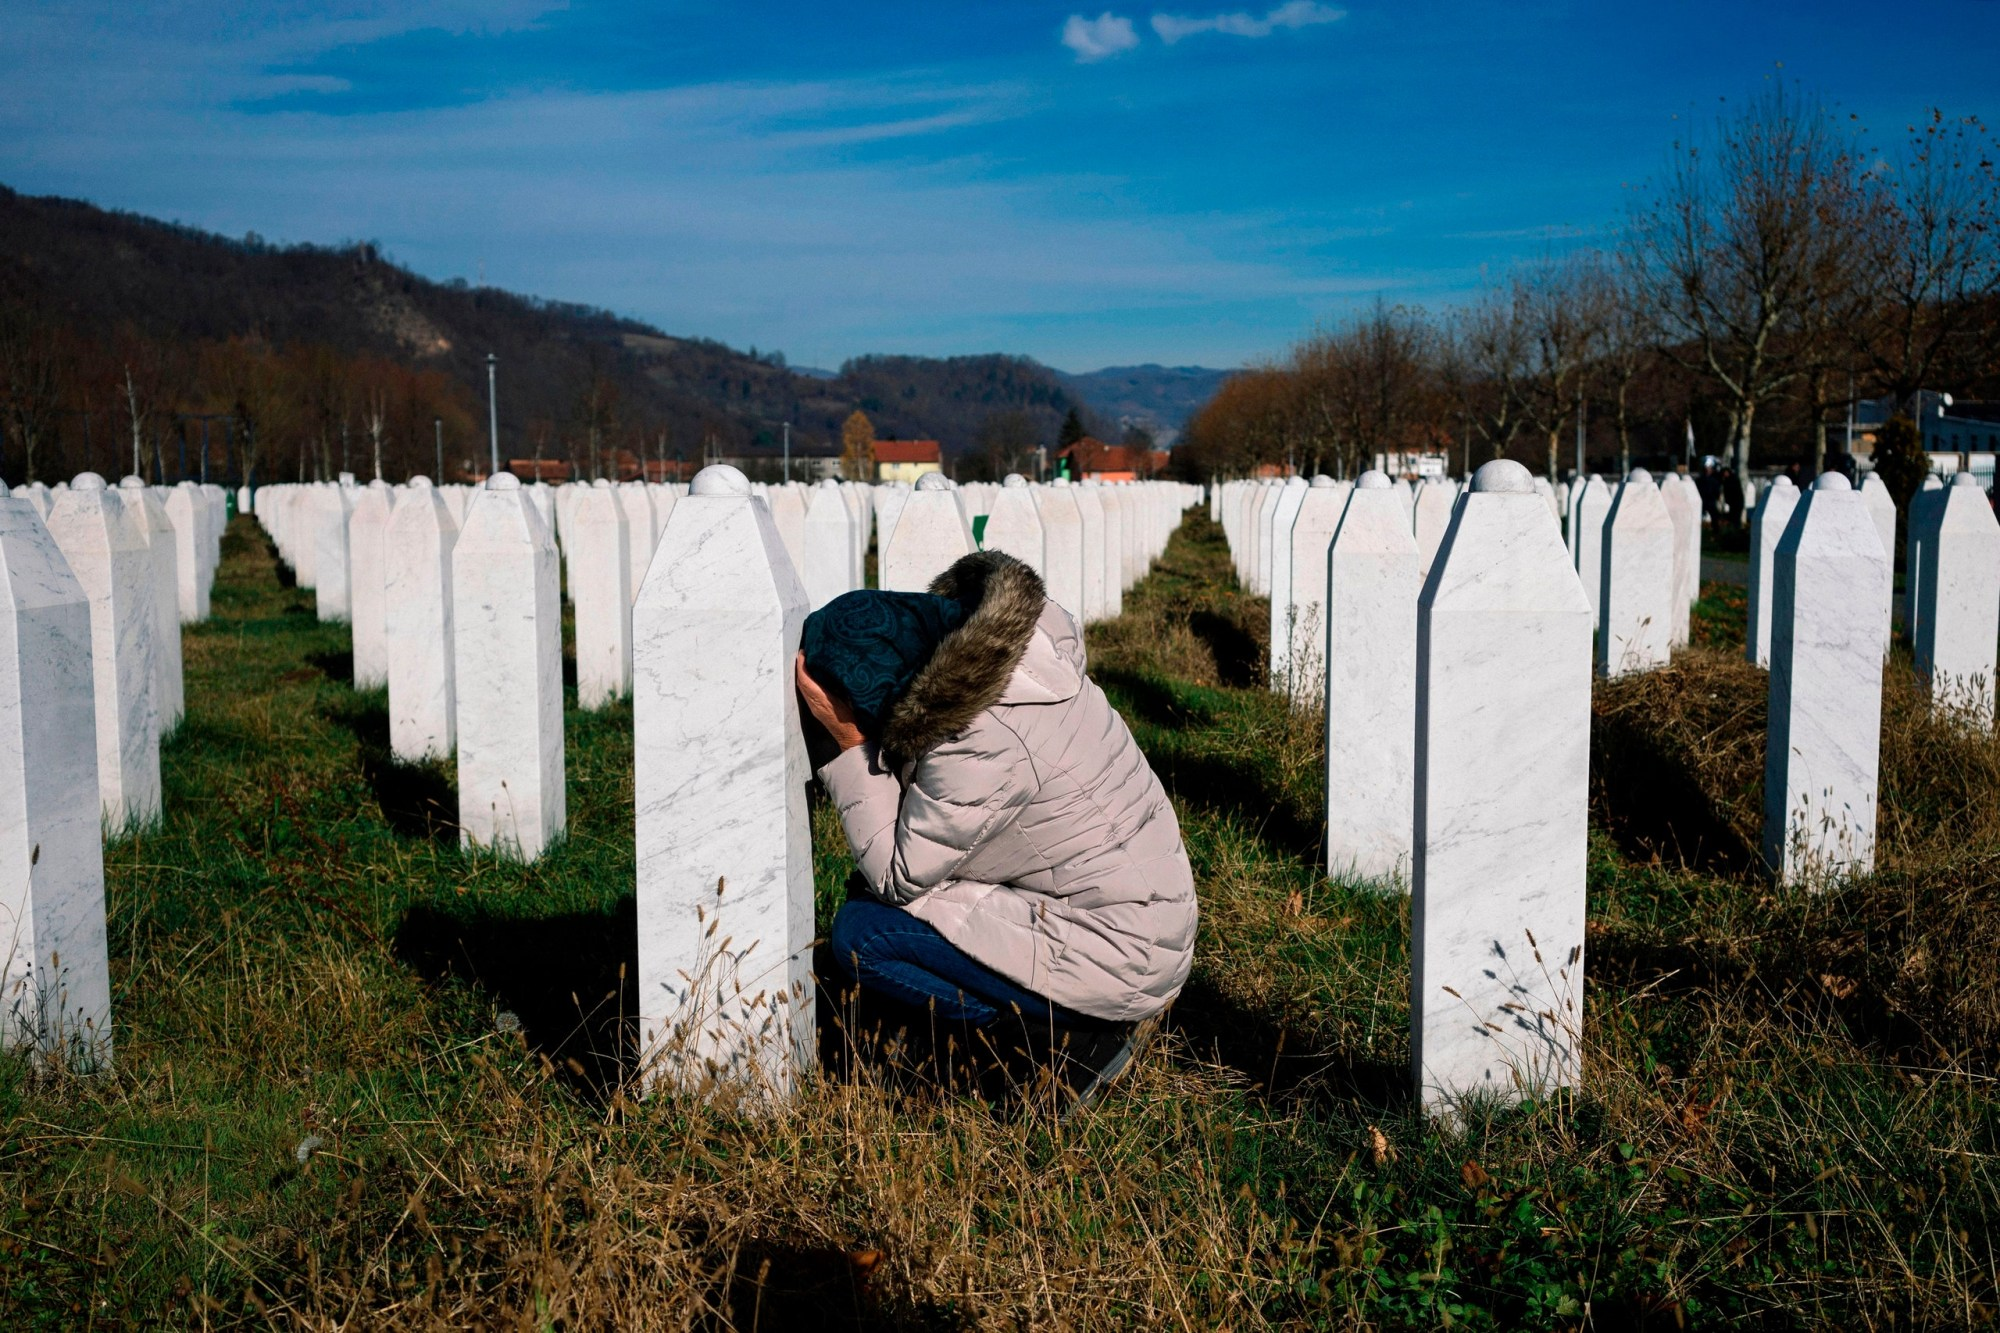 MPs and British Muslims demand apology from Prime Minister over his remarks on Srebrenica genocide victims